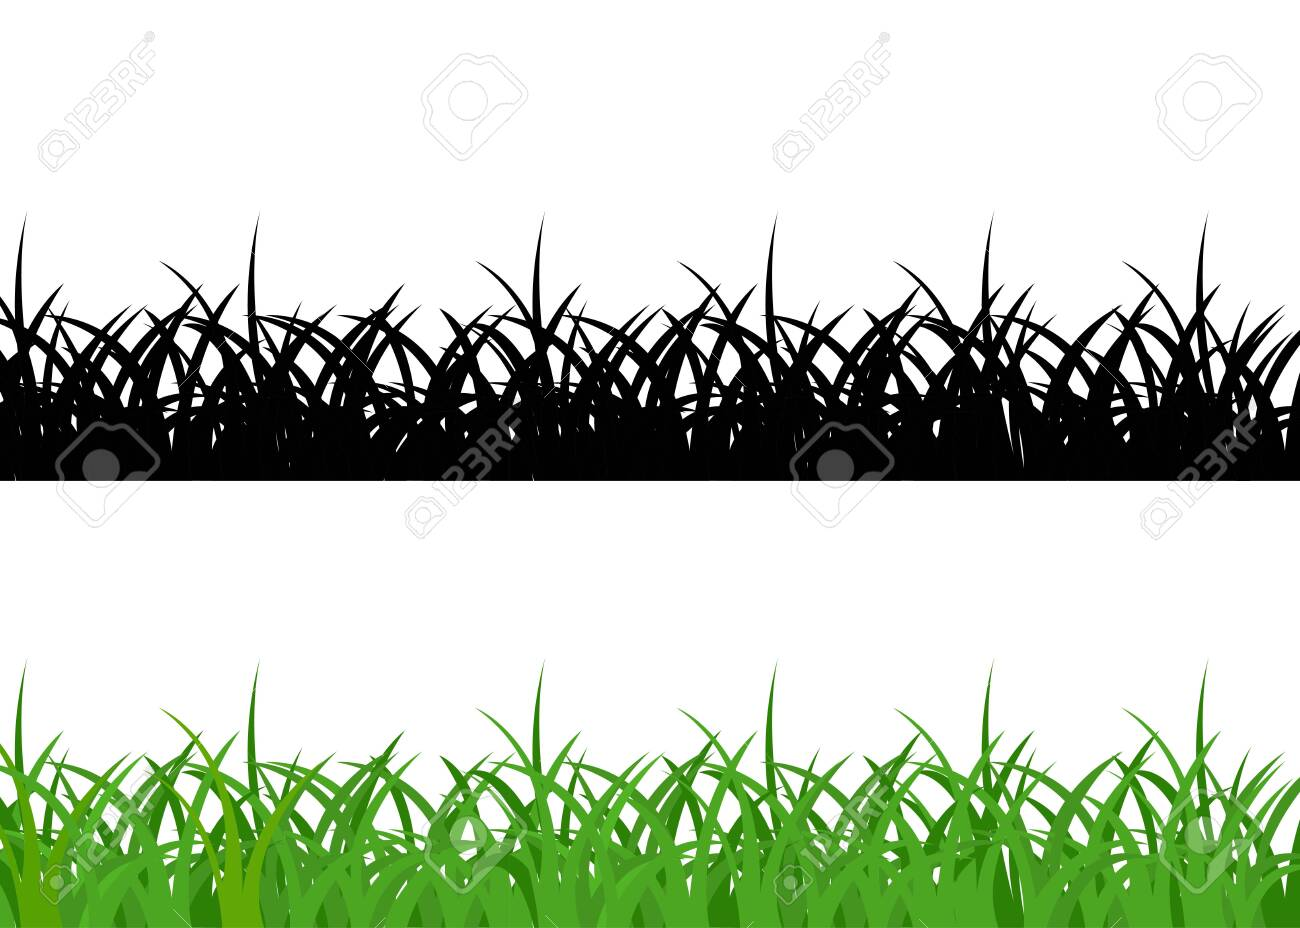 Grass borders, green and black on white background - 140022006